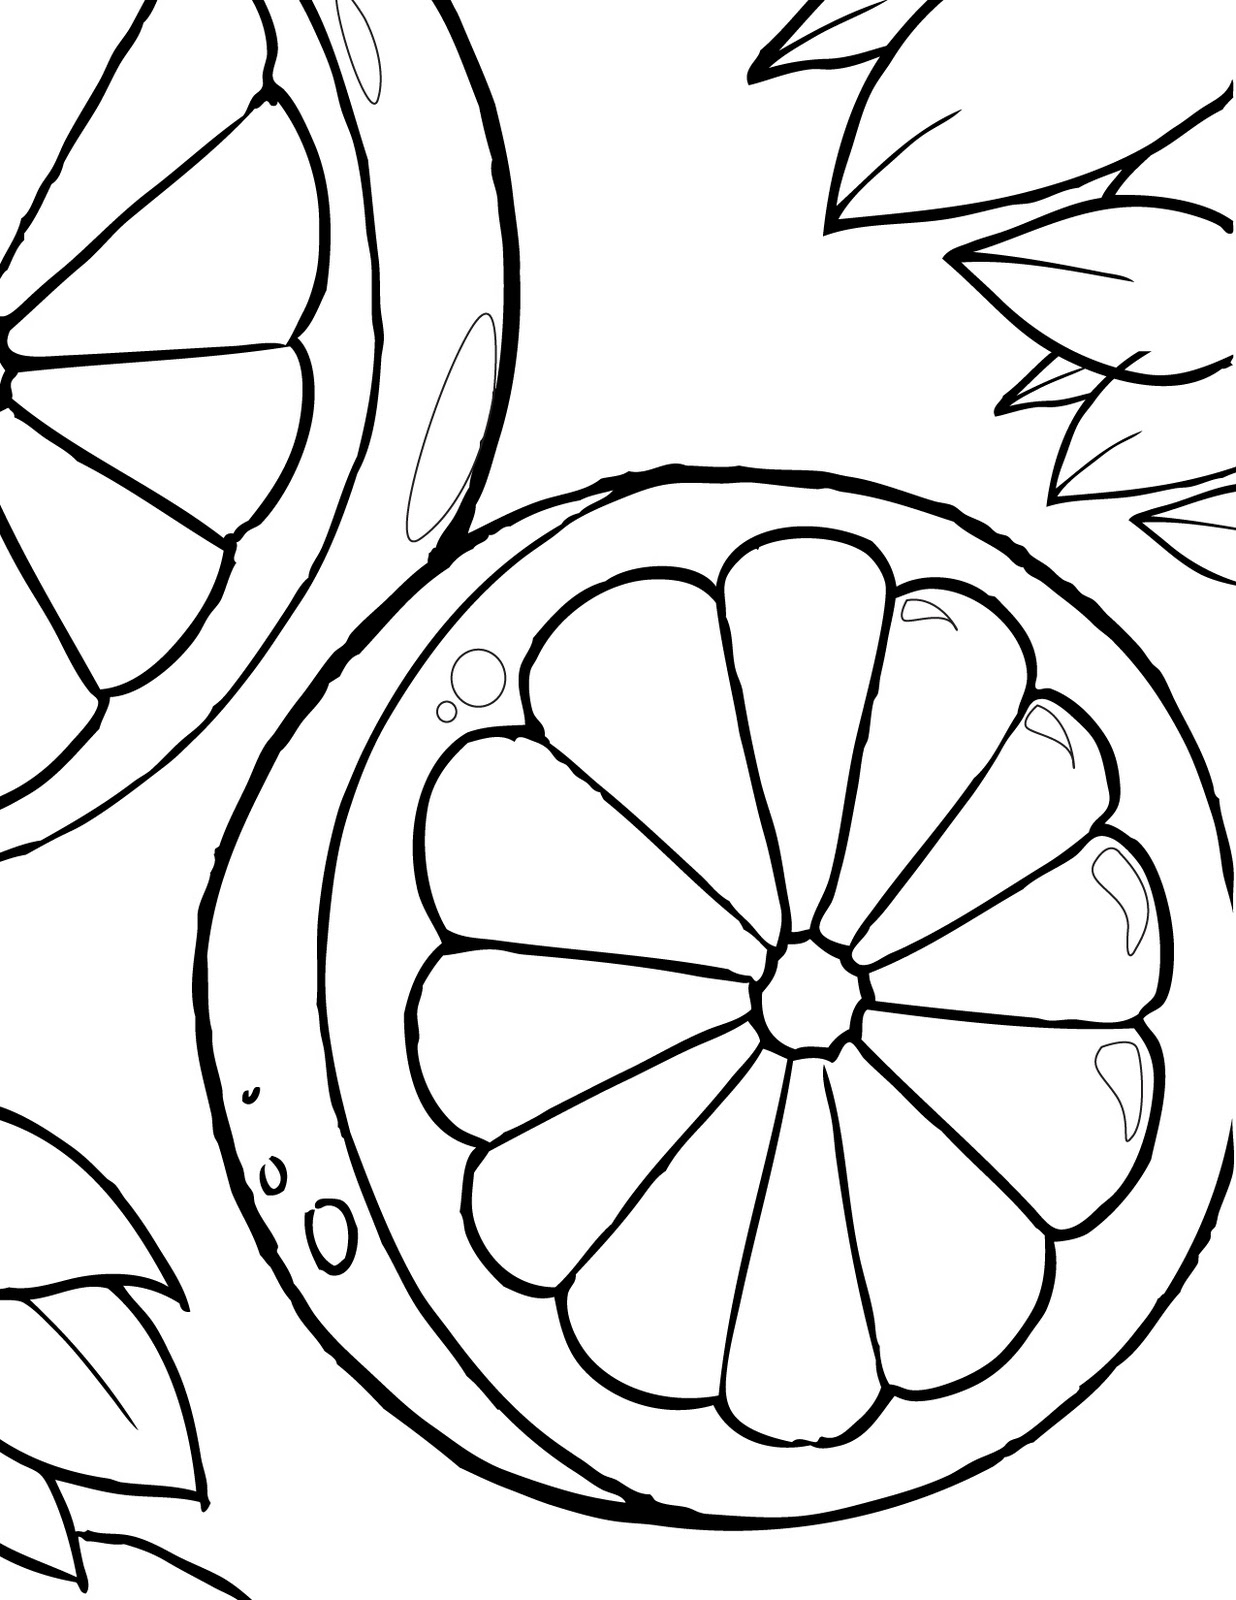 Orange Fruit Coloring Pages http://free-coloring-pages-kids.blogspot.com/2012/01/13-fruit-orange-coloring-books-for.html